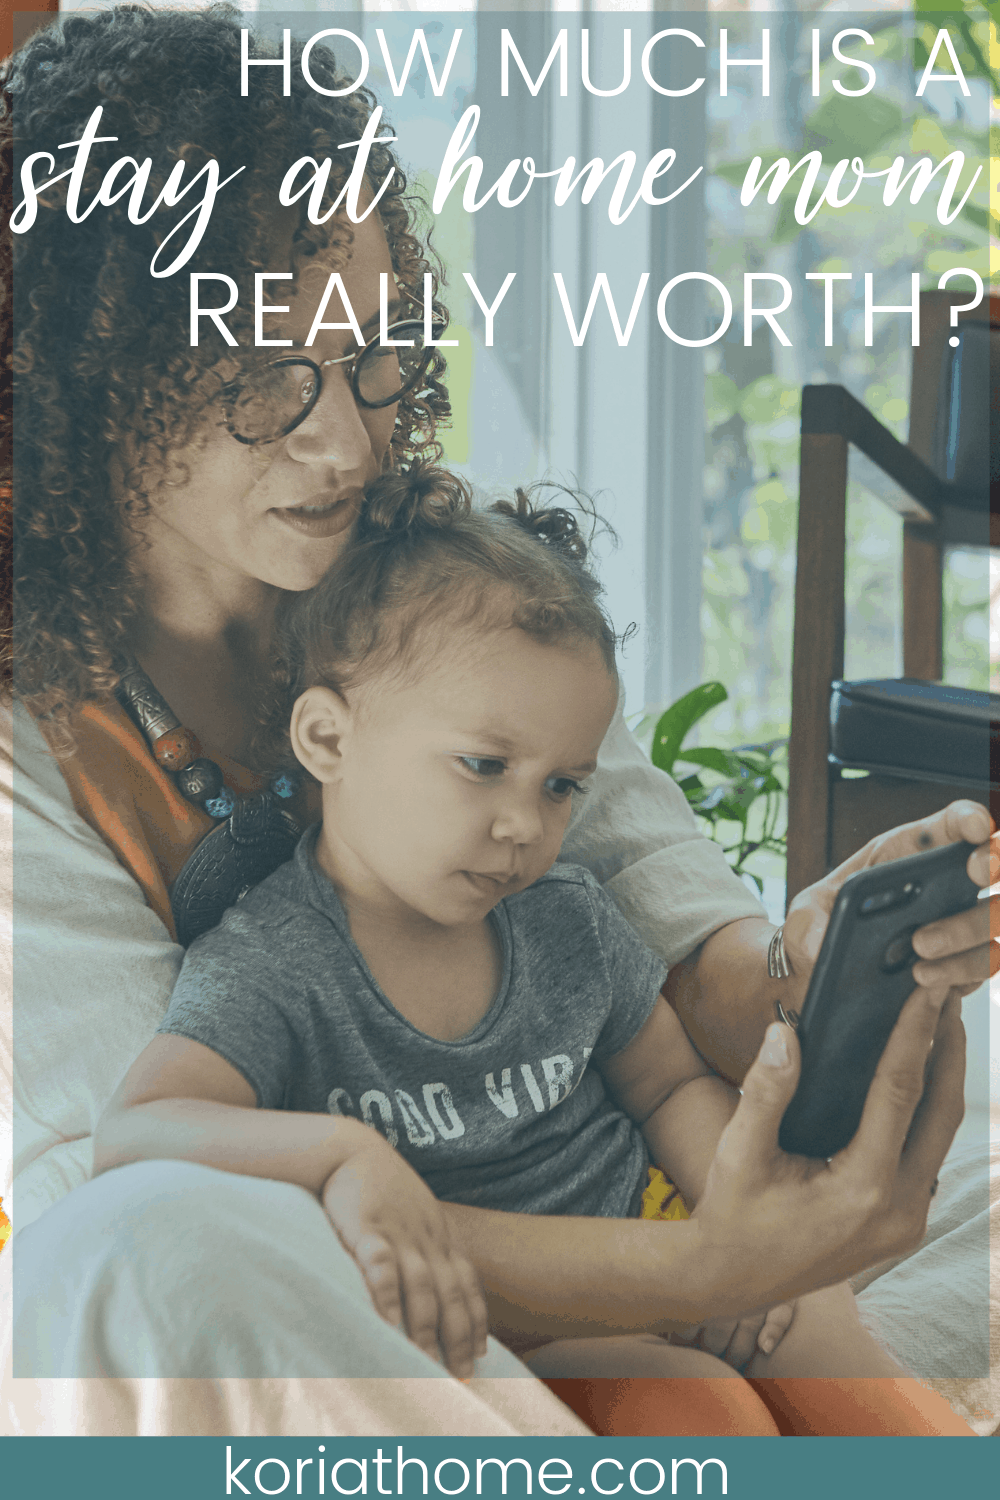 Is it really worth to be a stay at home mom? Calculating your true value 1